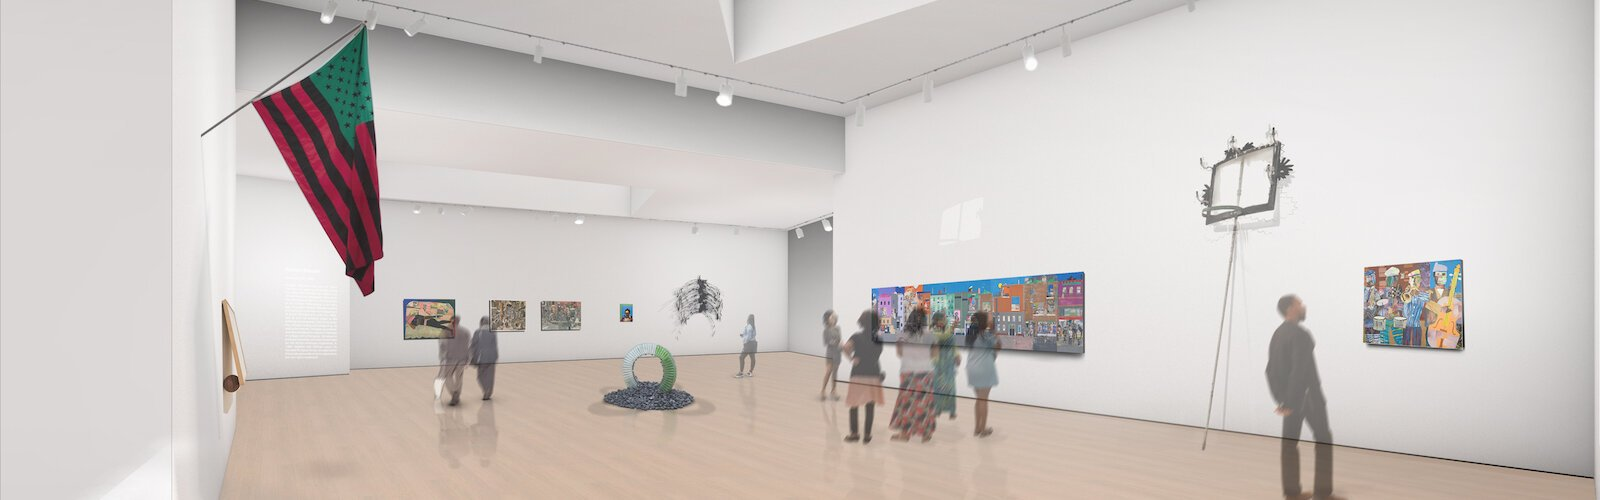 Vision for future gallery space at new, modern Dr. Carter G. Woodson African American Museum.